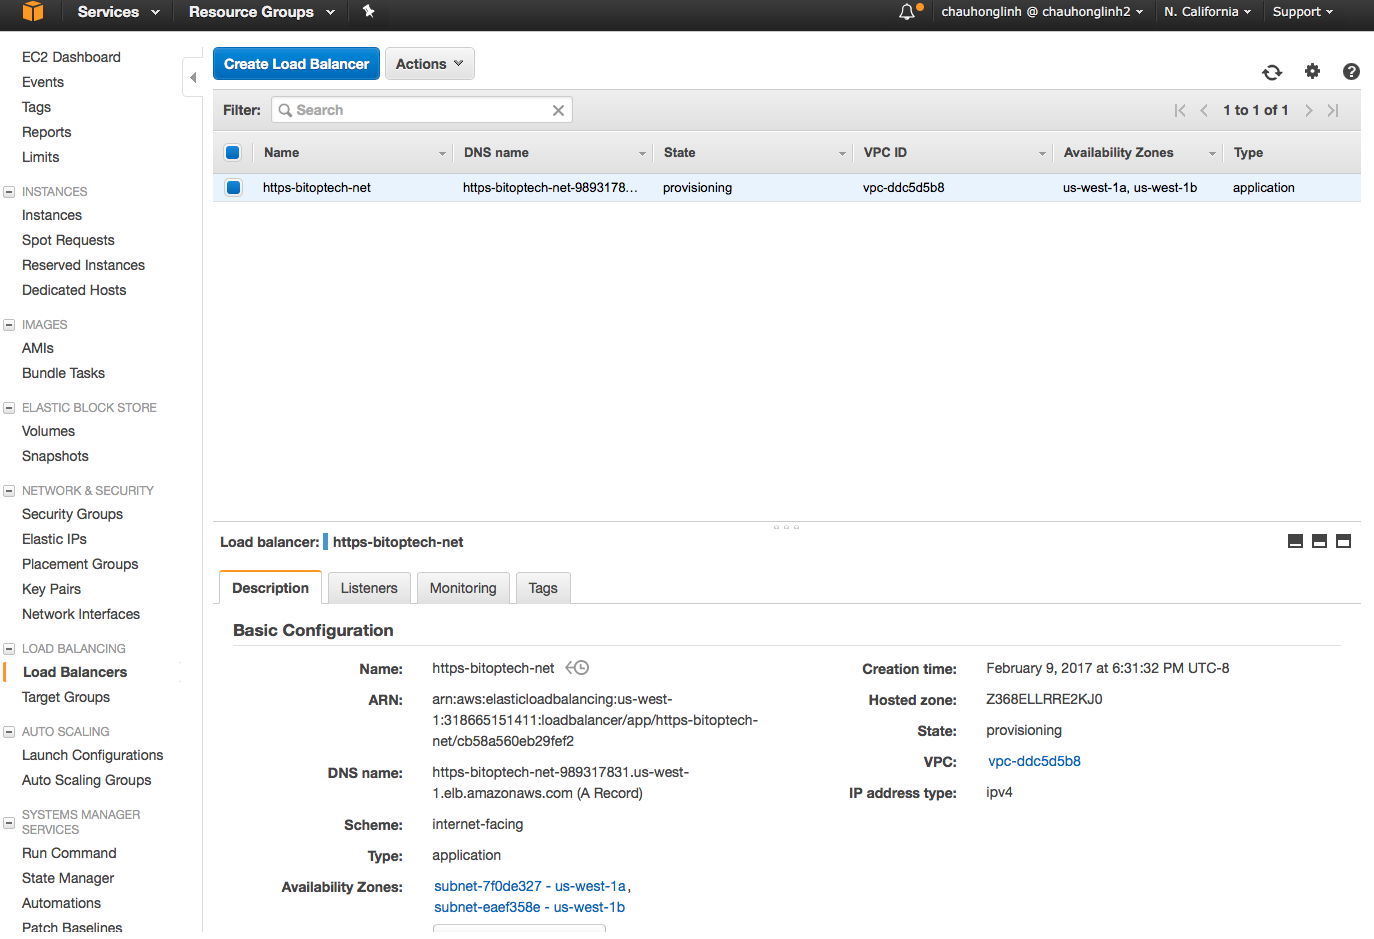 AWS: Setup ELB and Route53 to handle SSL certificate and www